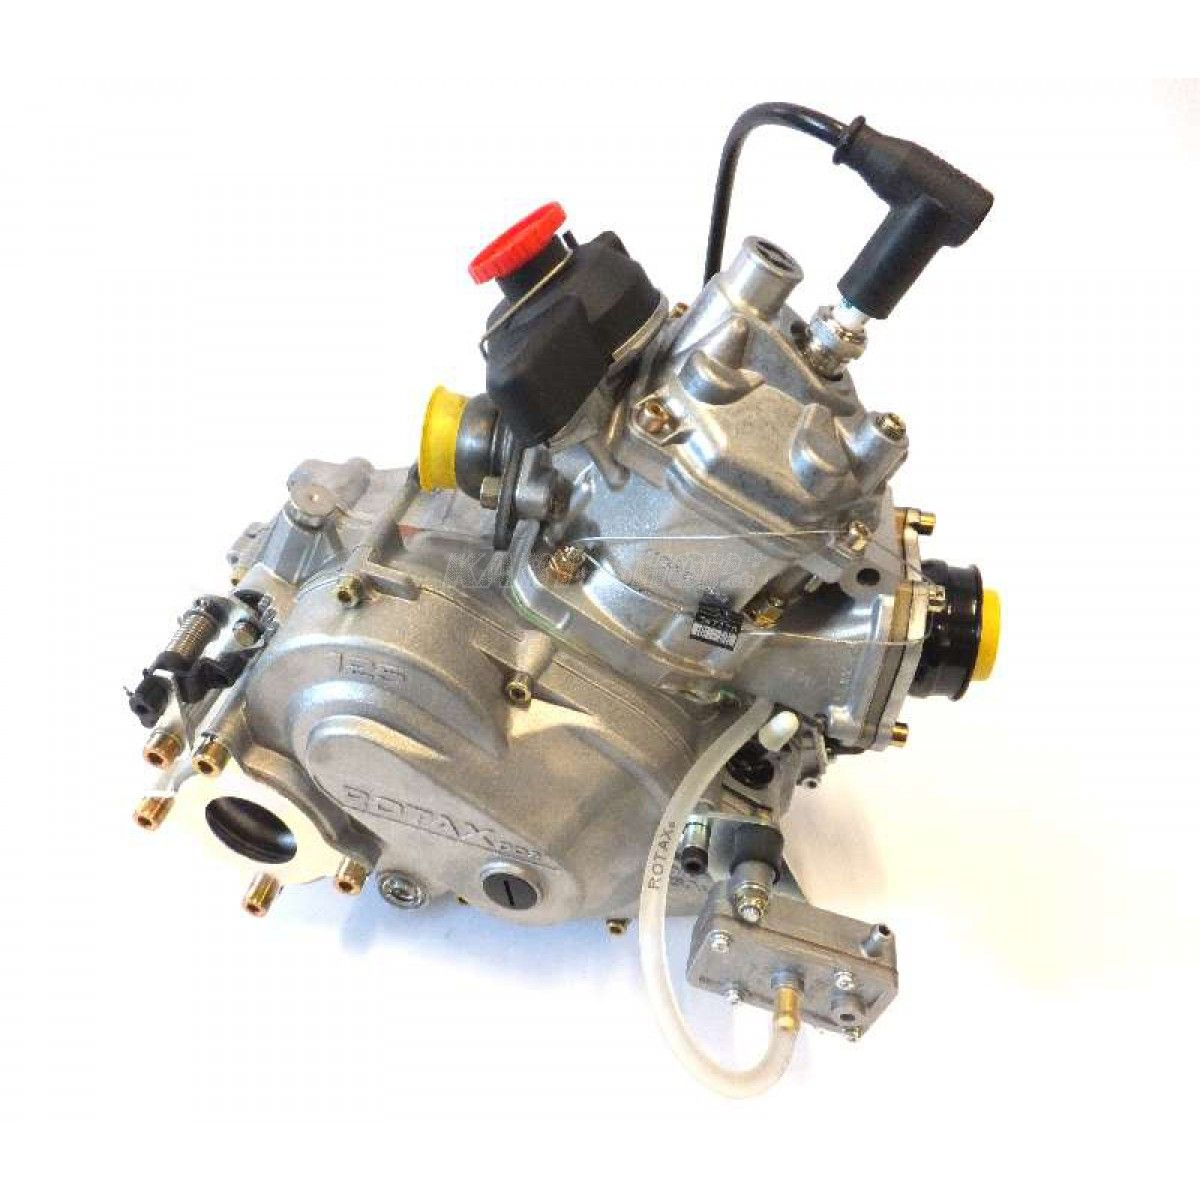 125cc rotax dd2 engine specifications 2 stroke 1 for 5 hp motor weight